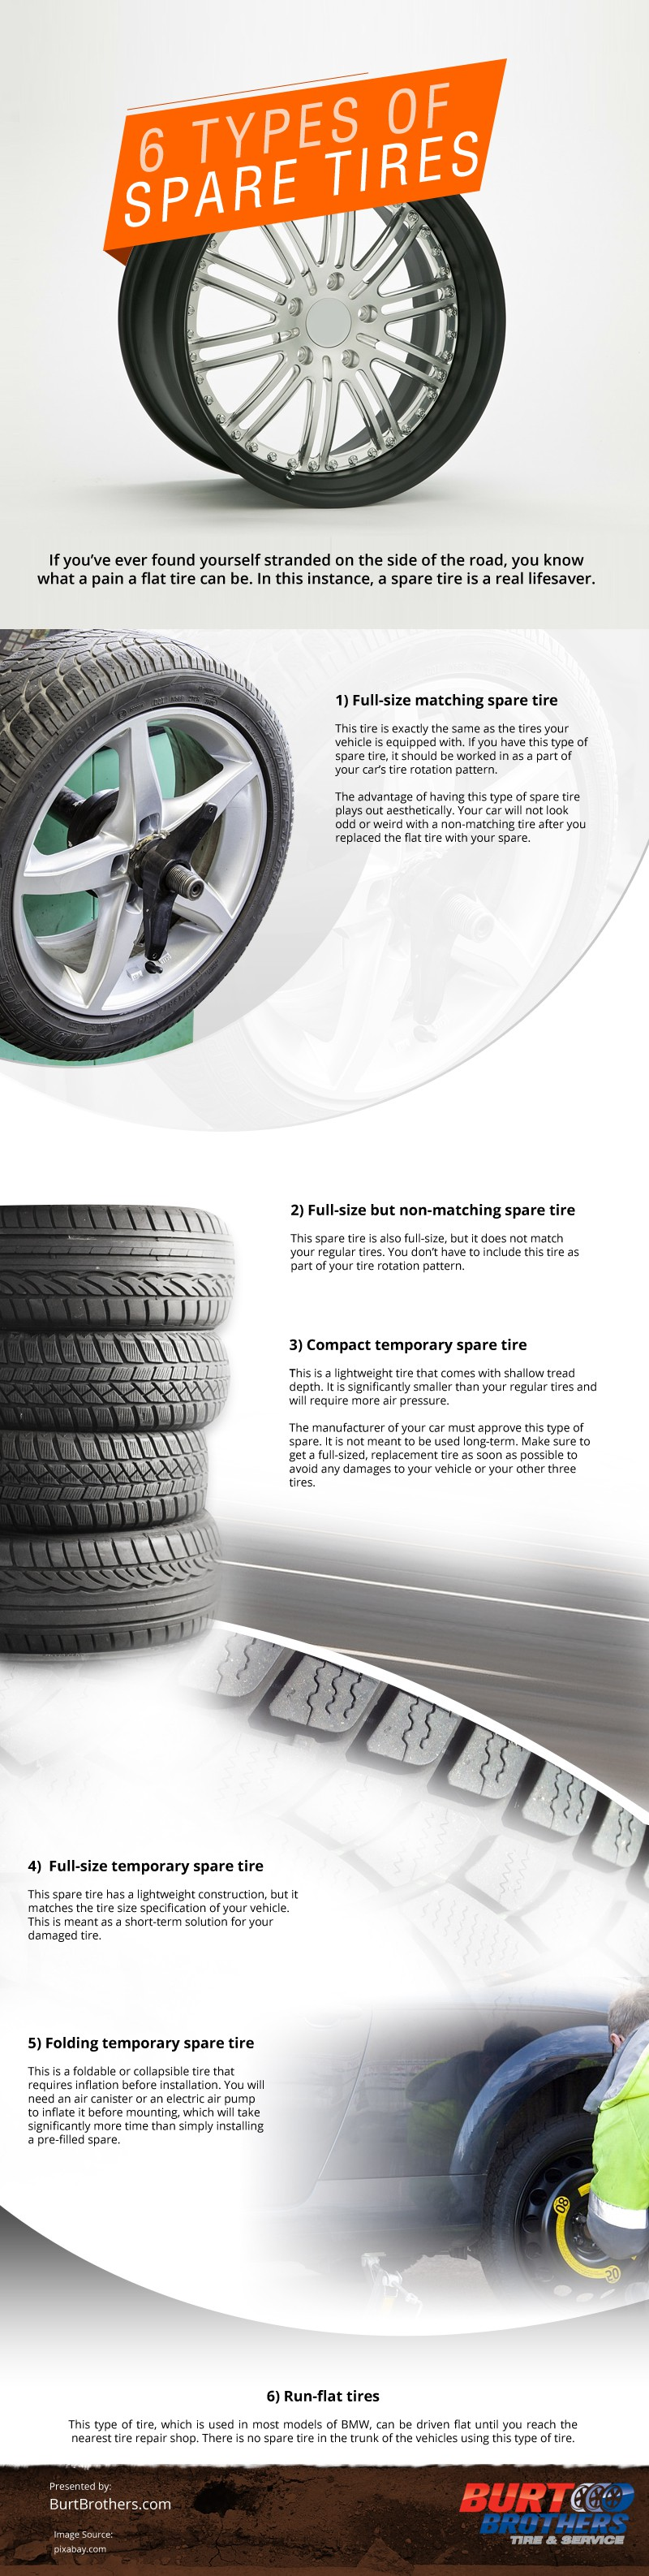 6 Types of Spare Tires